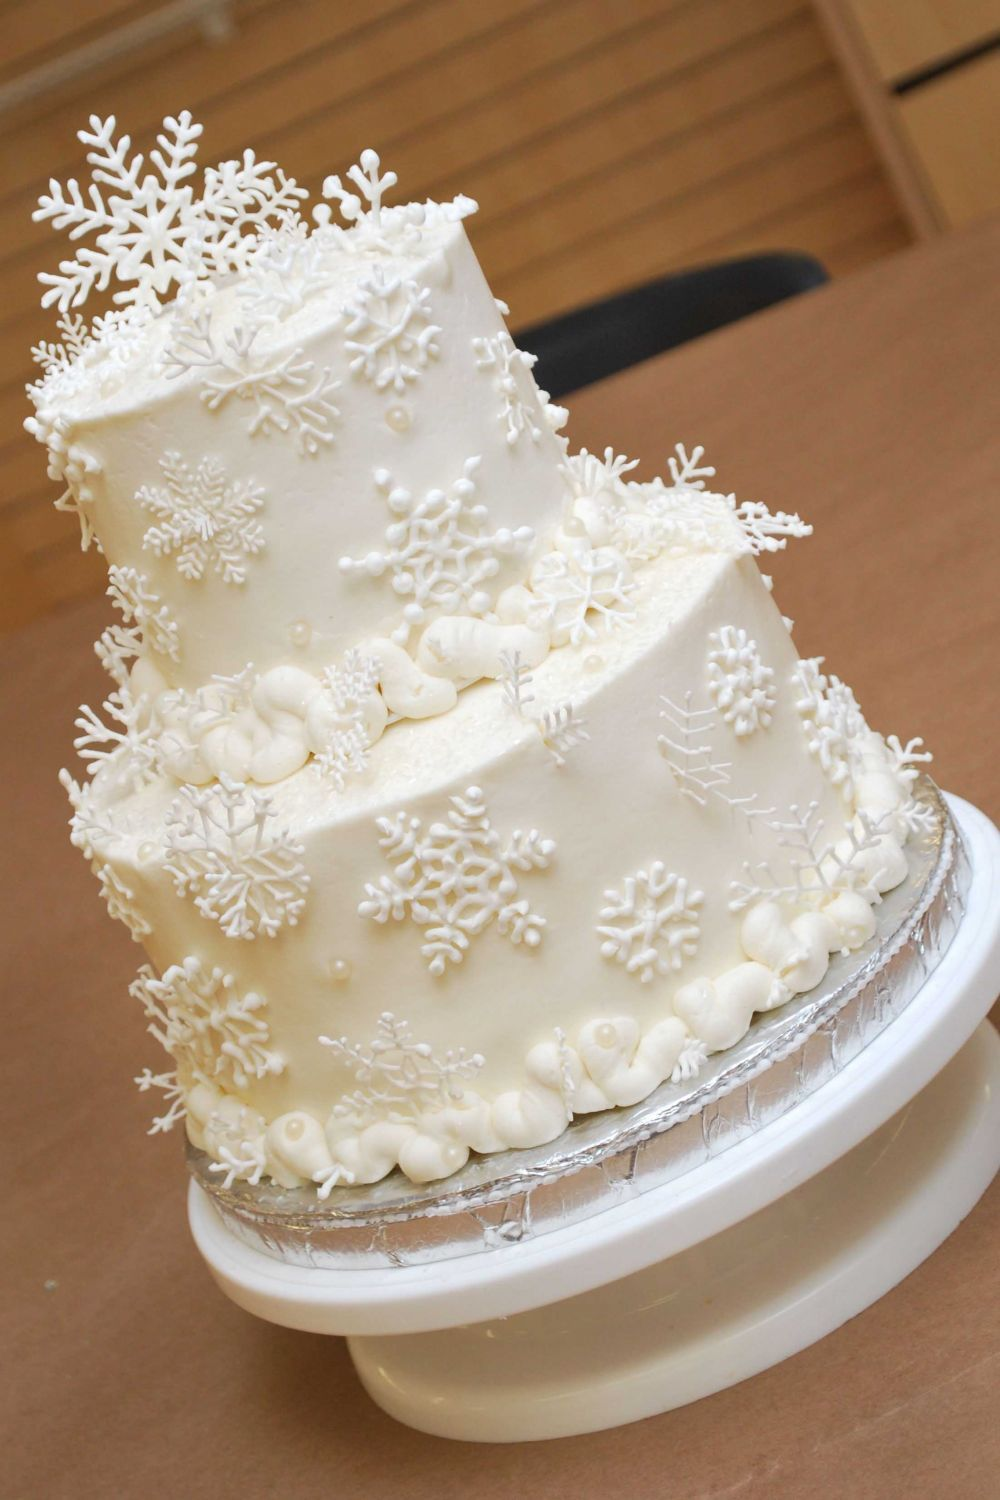 Snowflake Cake | Cakes I Would Love to Make | Pinterest | Snowflake ...